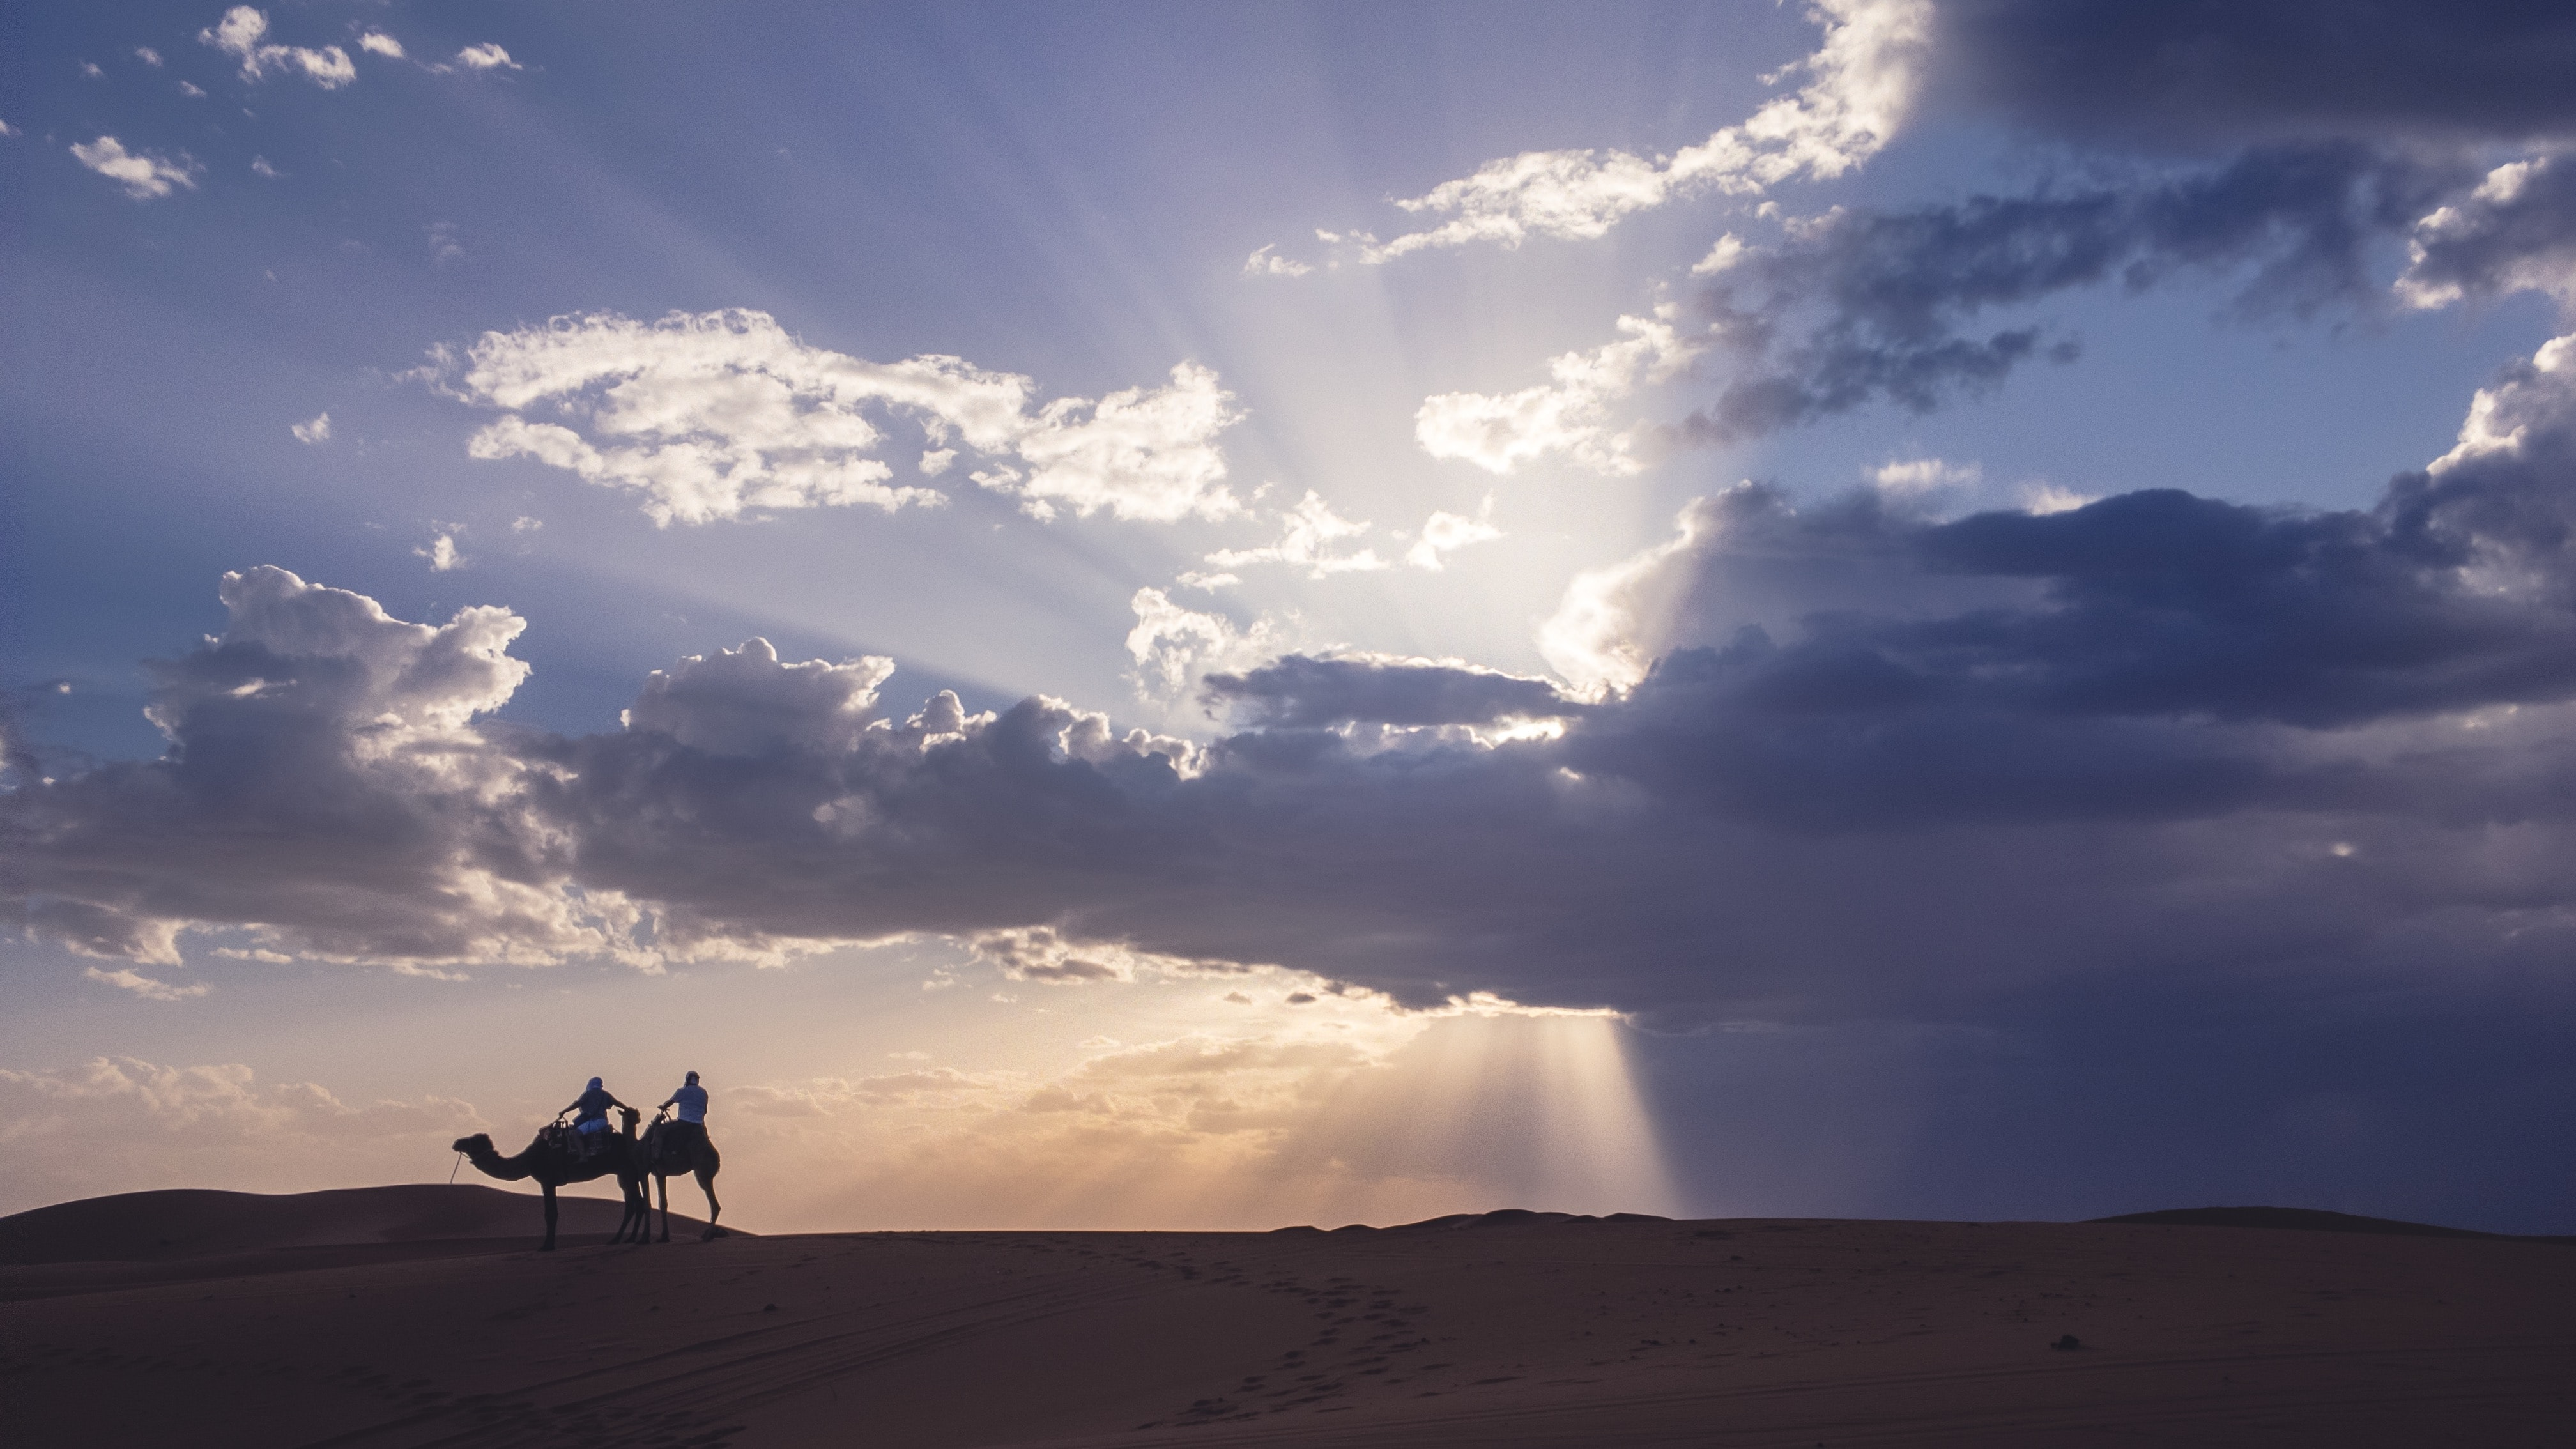 two person riding camel in the sand